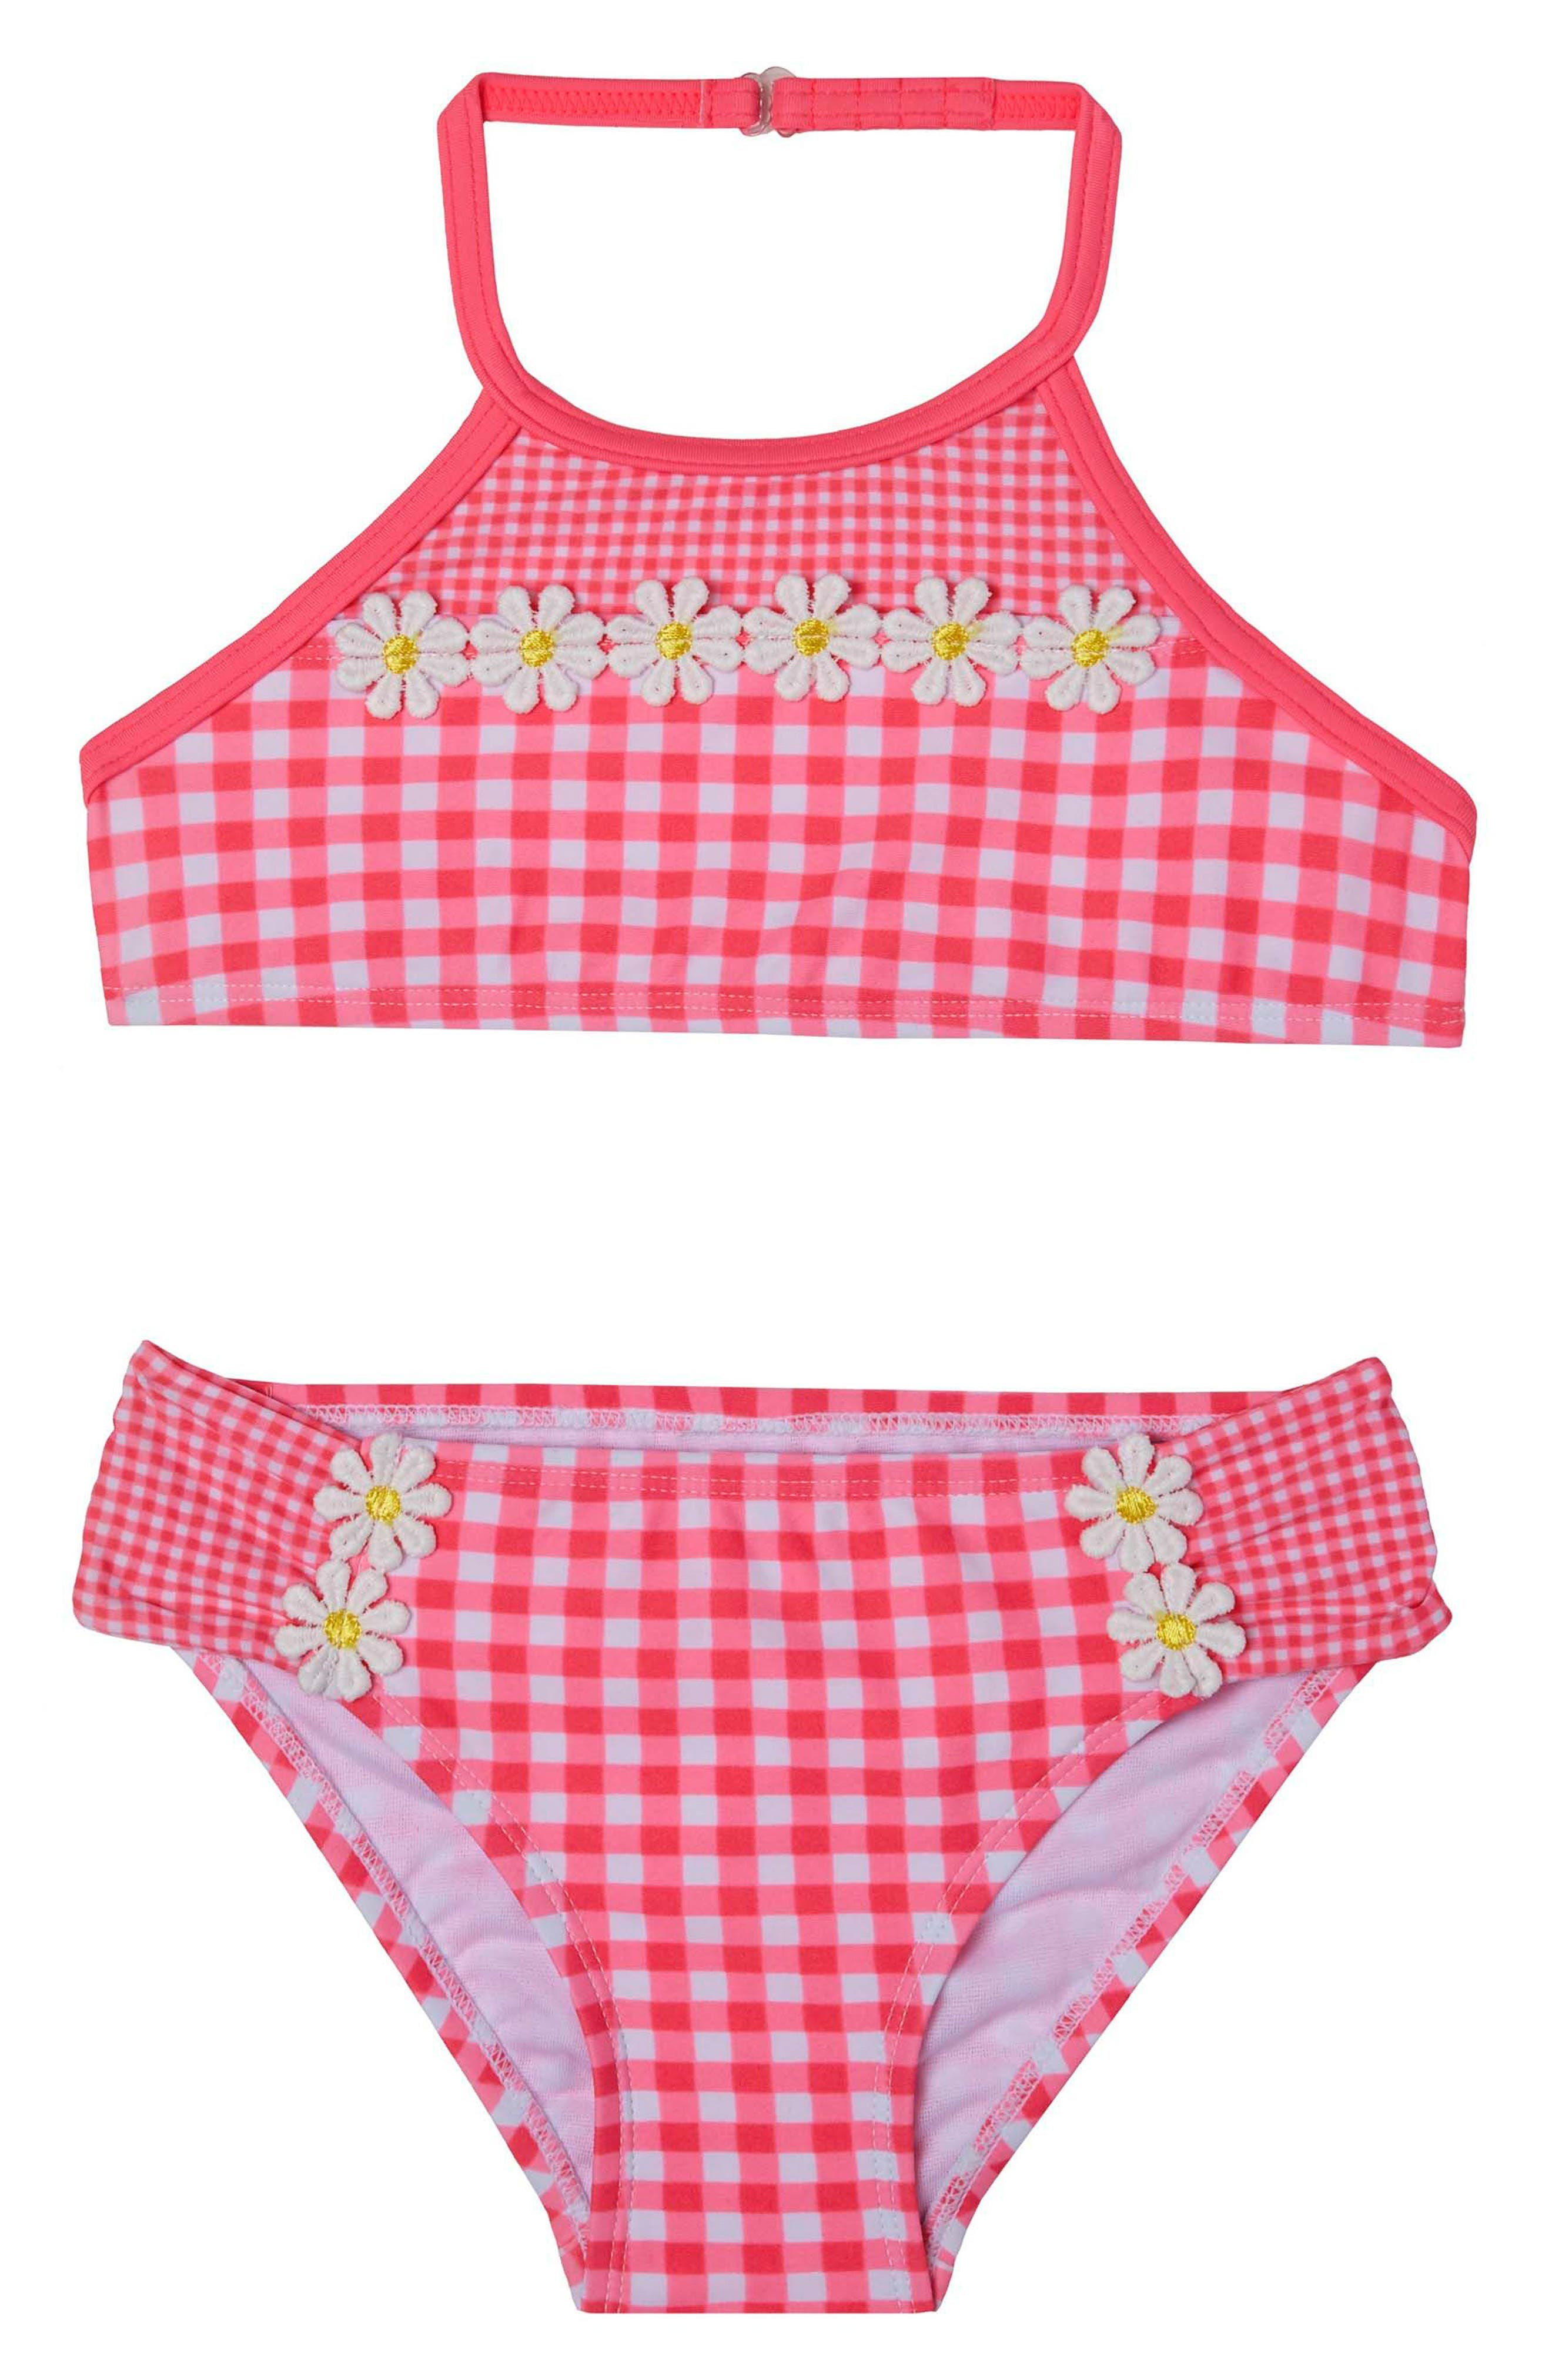 Picnic Gingham Two-Piece Swimsuit,                             Main thumbnail 1, color,                             Red